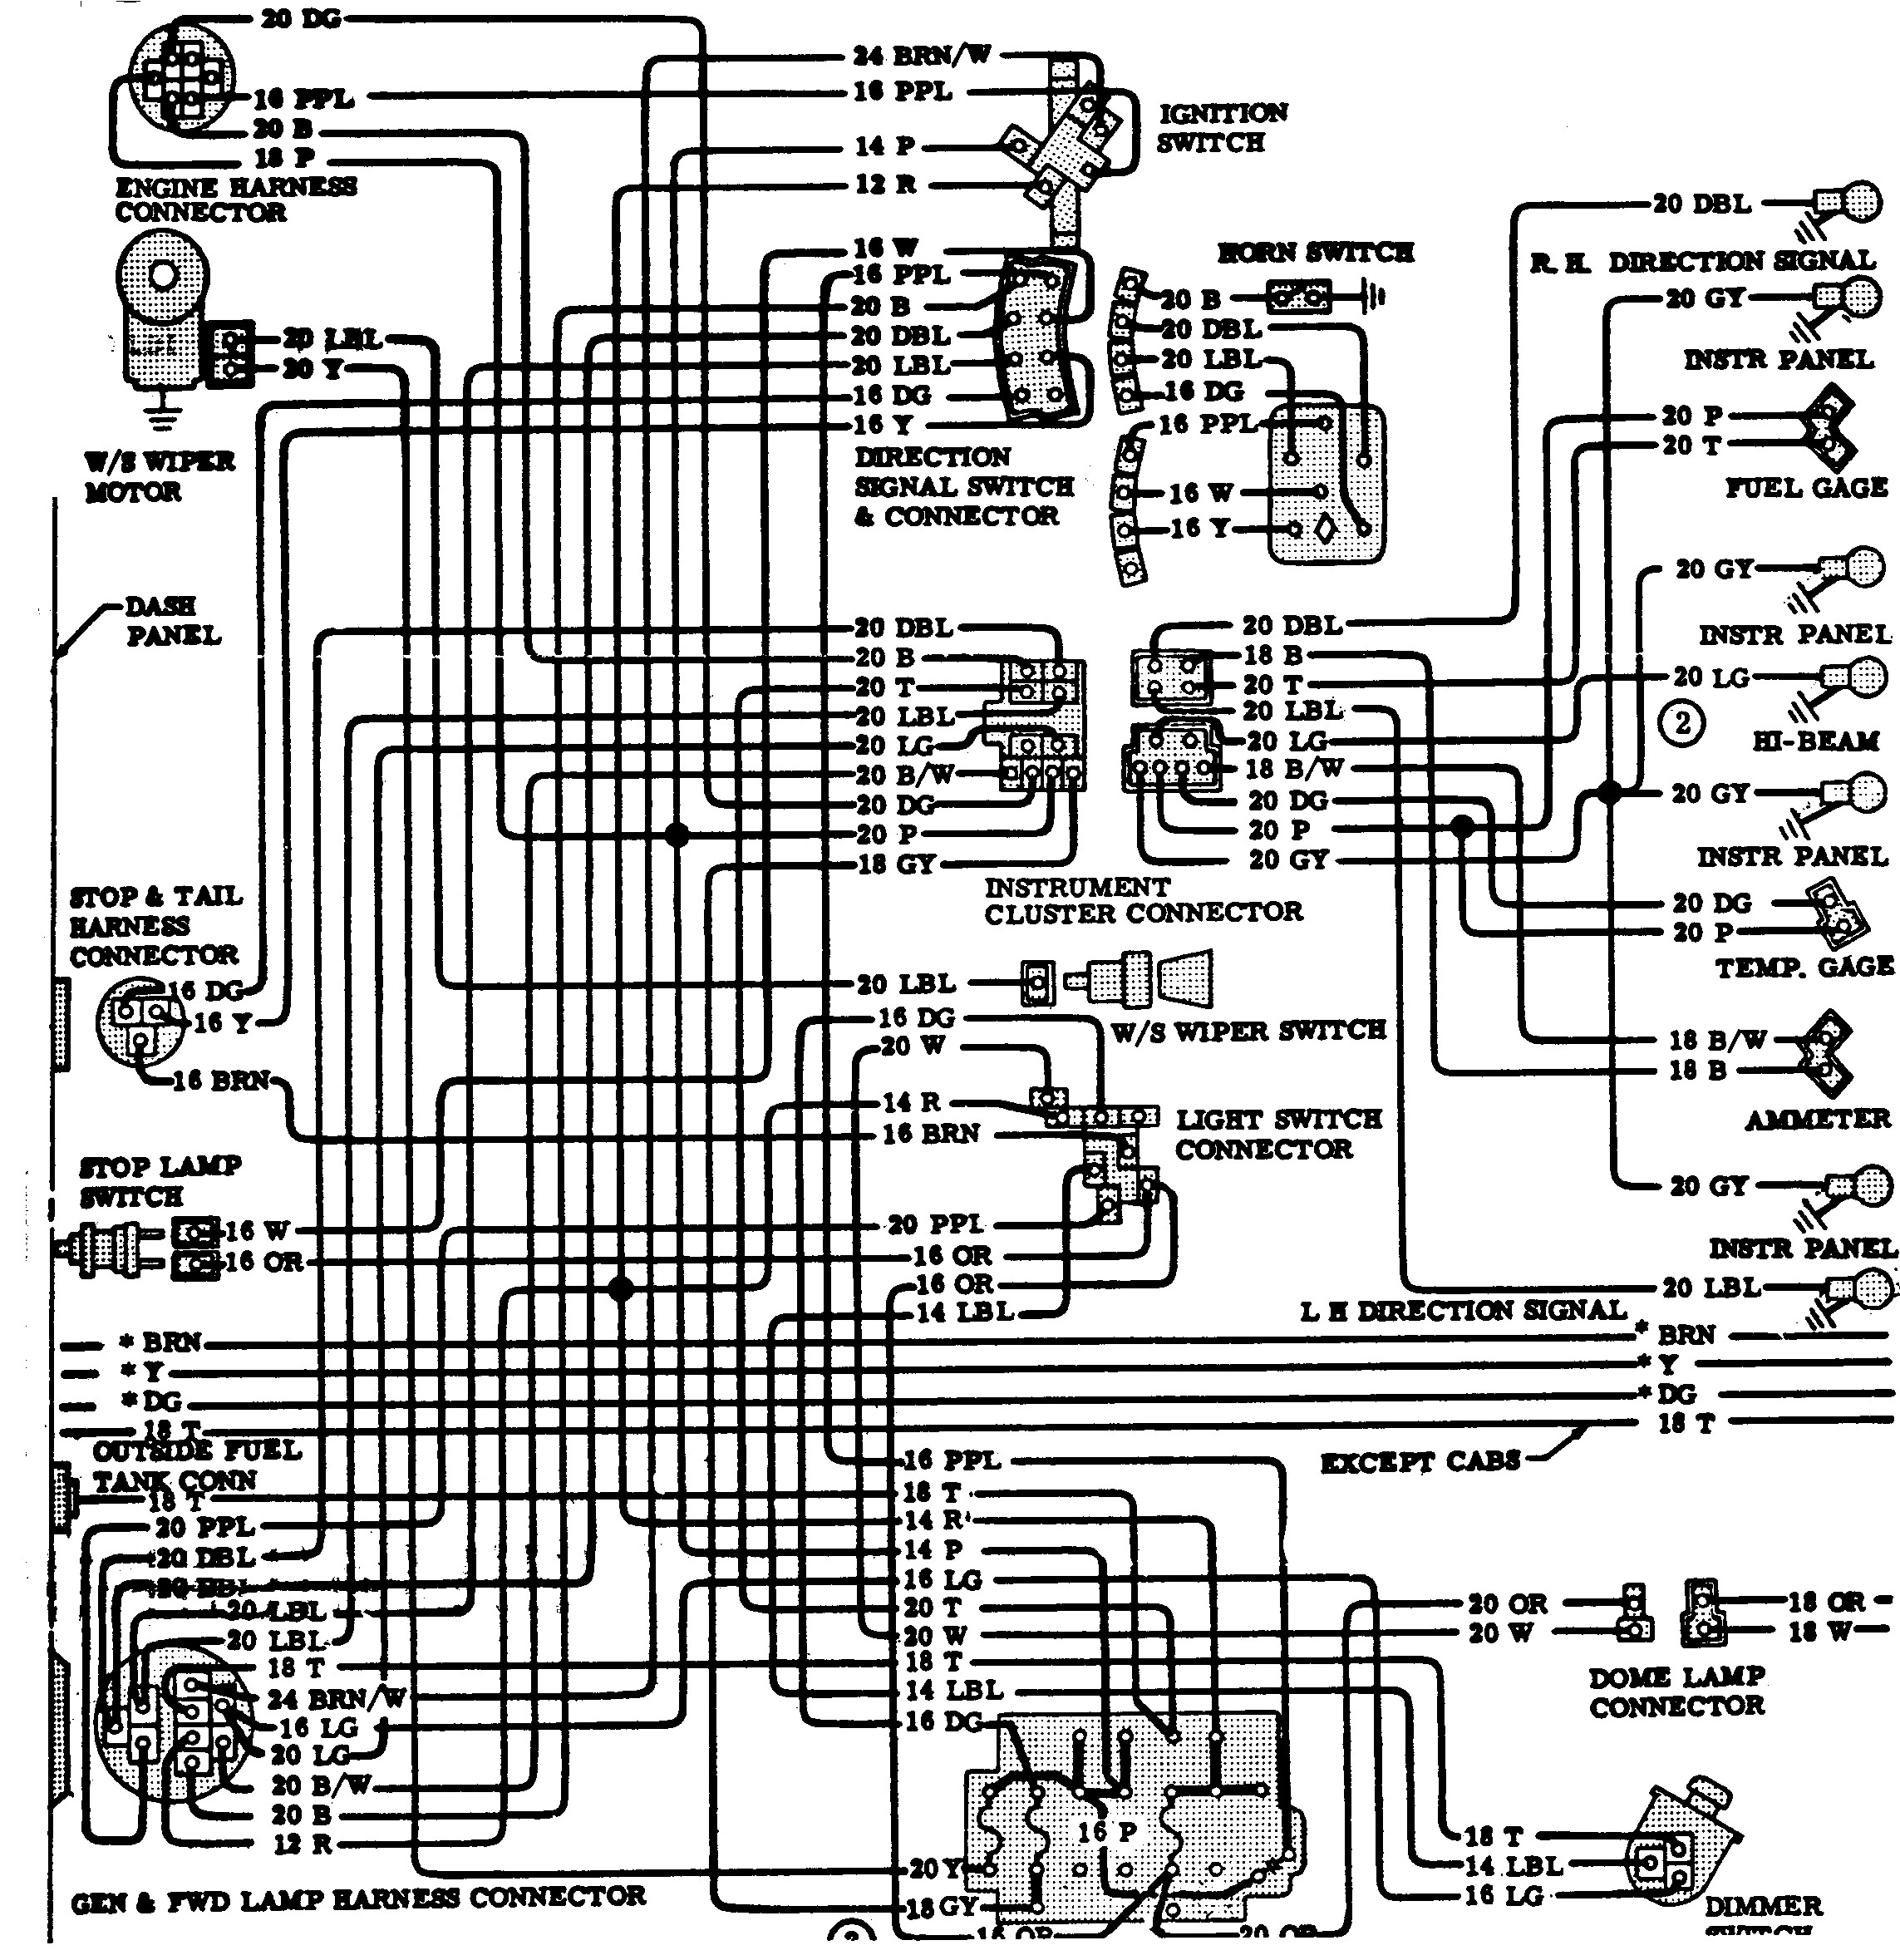 1974 Chevy Truck Wiring Diagram 1970 Chevrolet C10 Wiring Diagram Download  – Wiring Diagram Collection Of